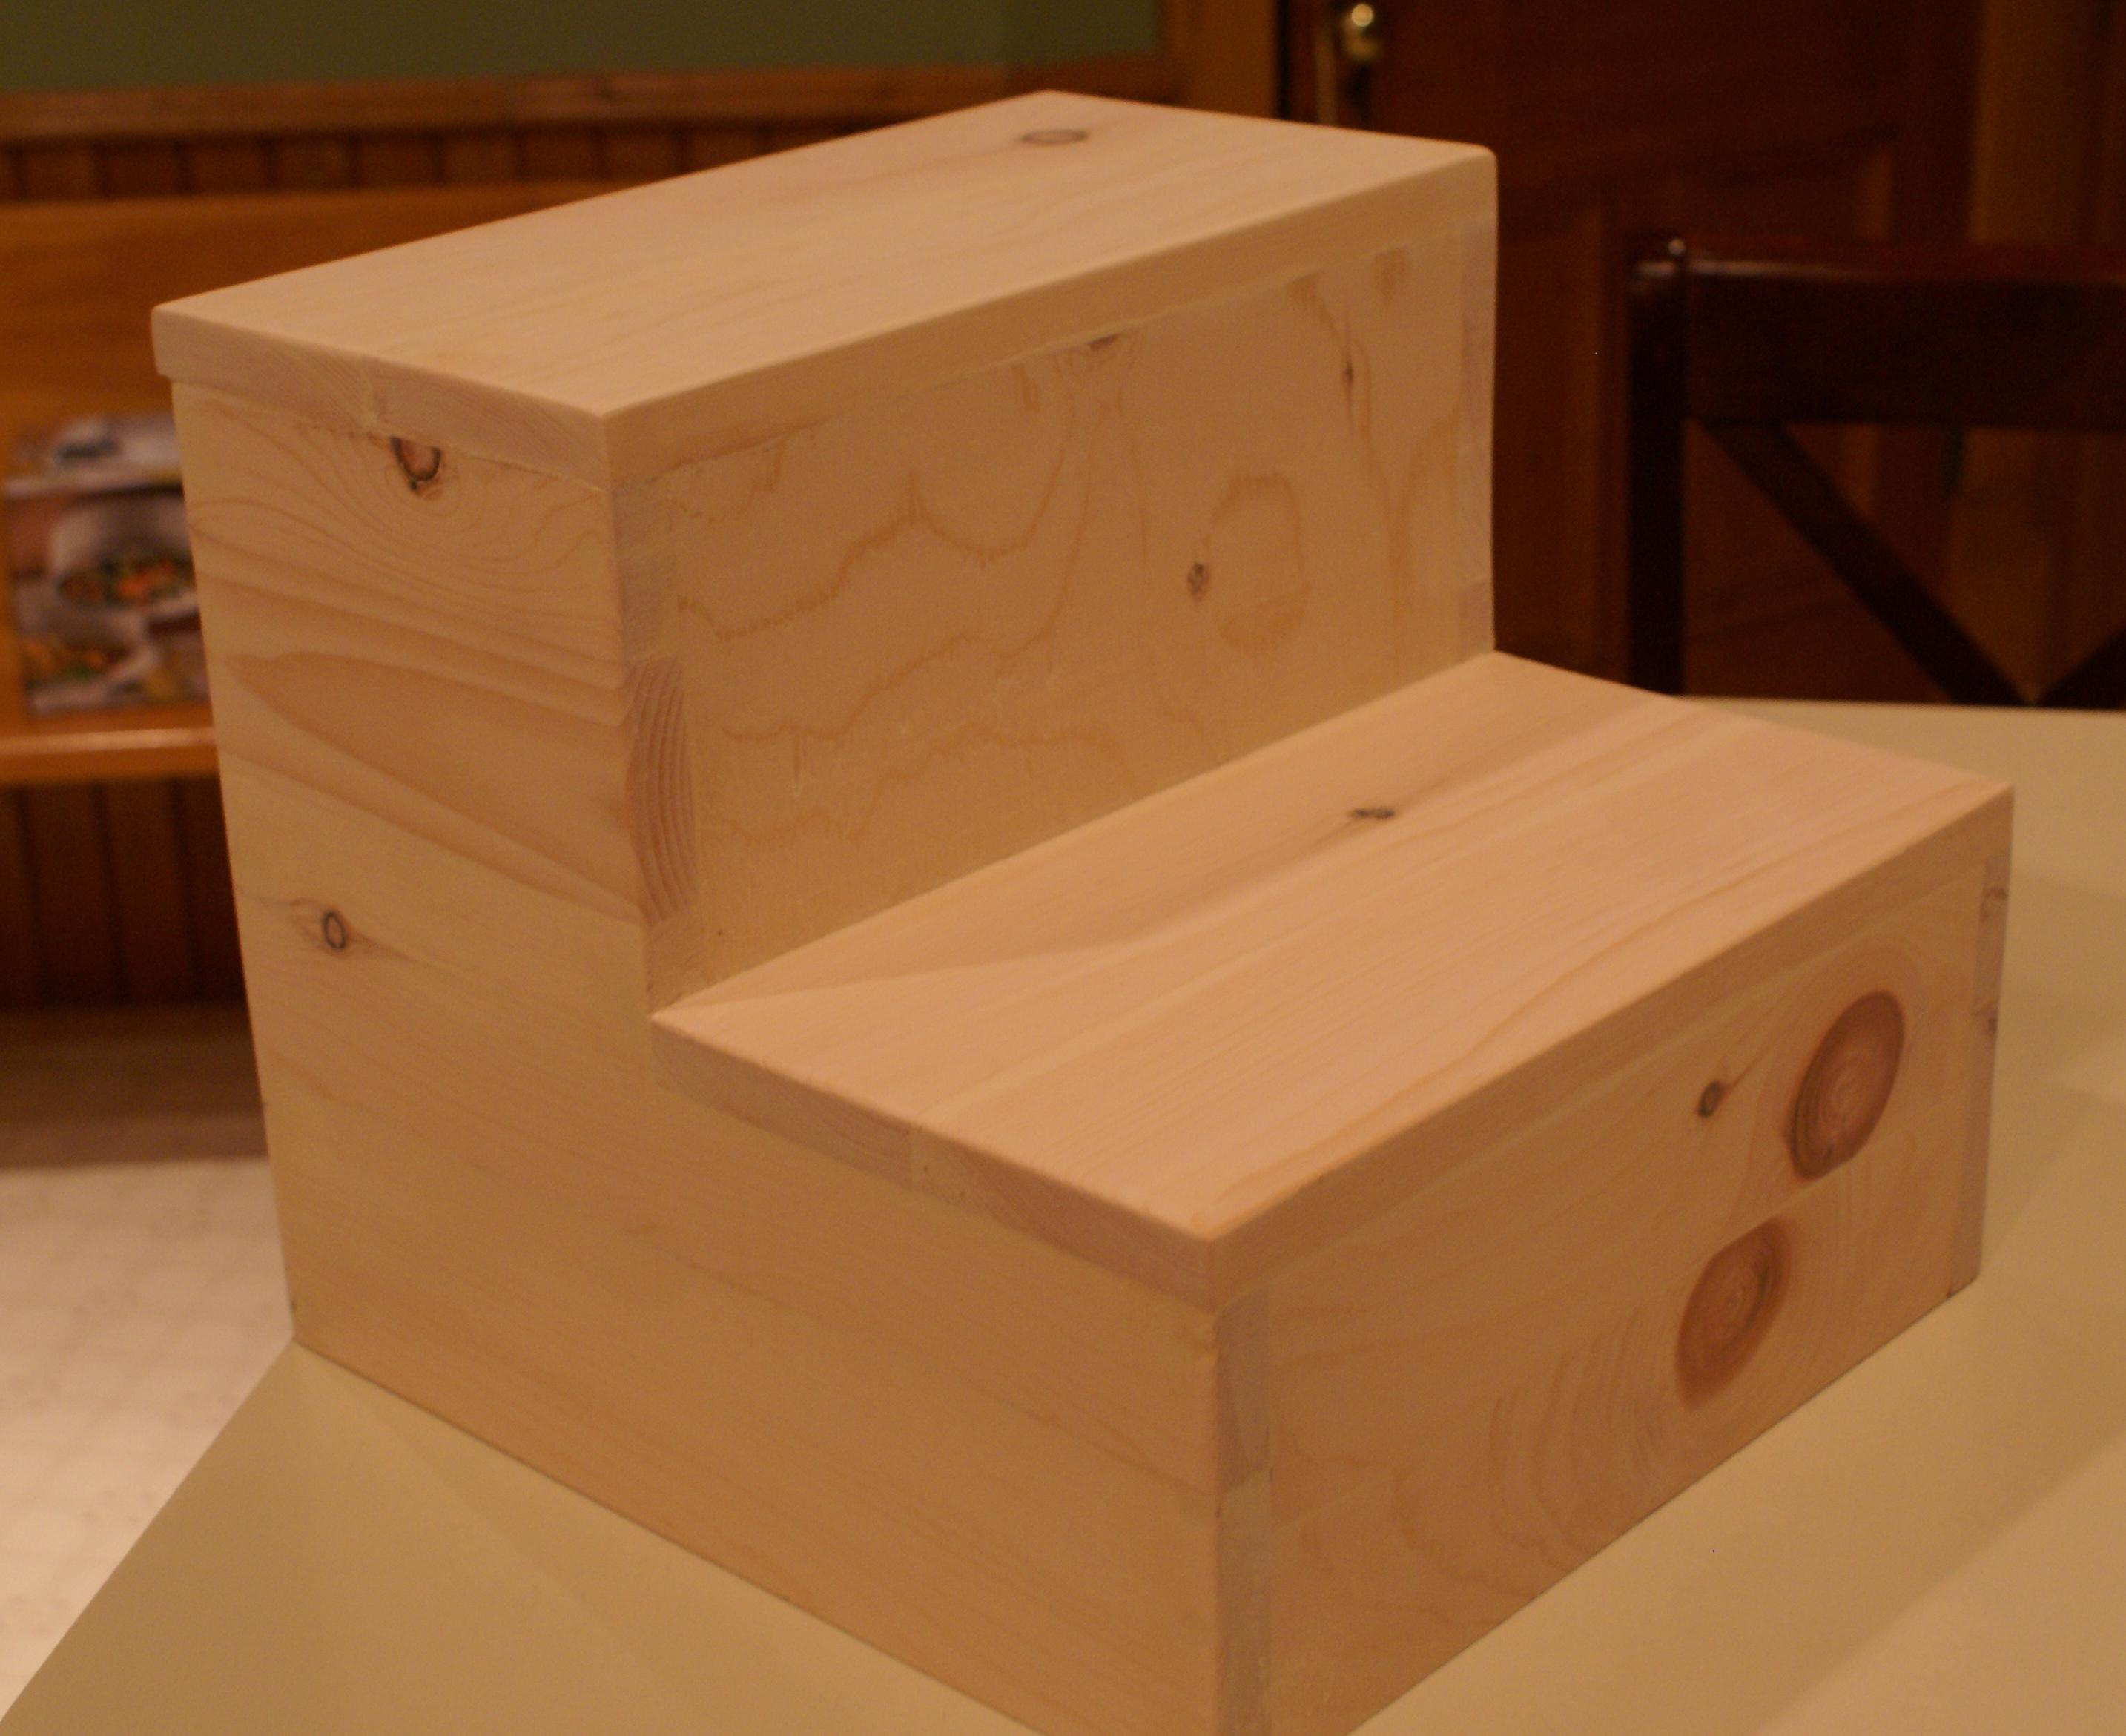 An Unexciting Step Stool & Ana White   An Unexciting Step Stool - DIY Projects islam-shia.org